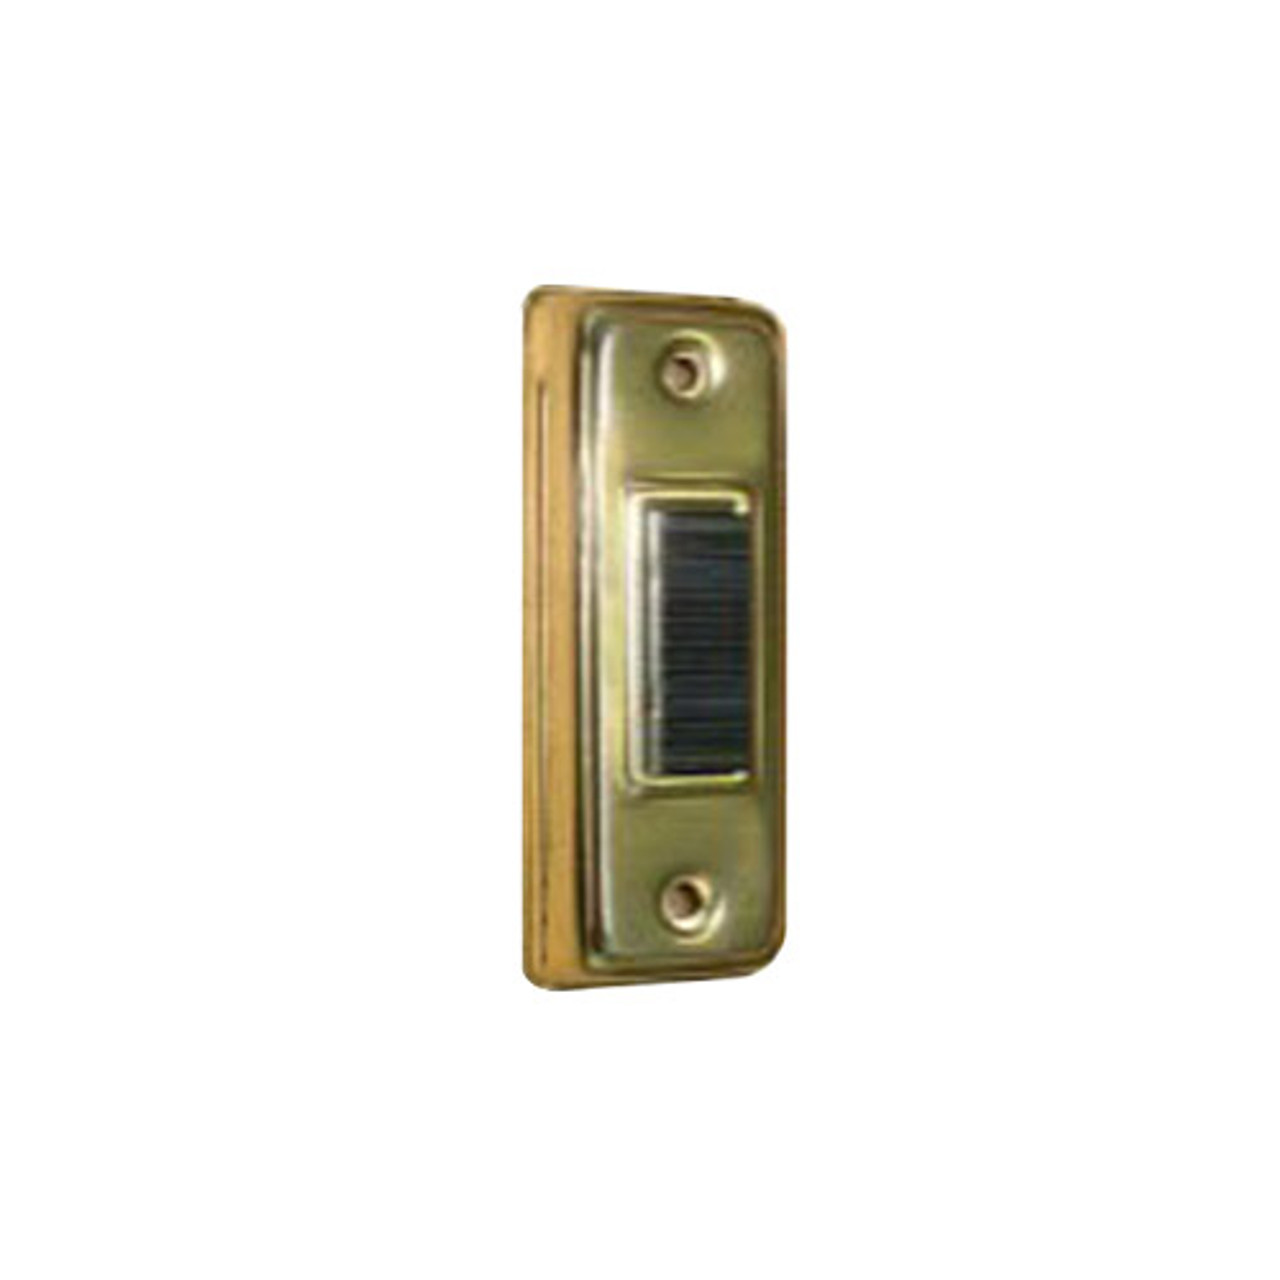 71LA Trine Push Button Lighted Anodized Aluminum Housing with White Bar